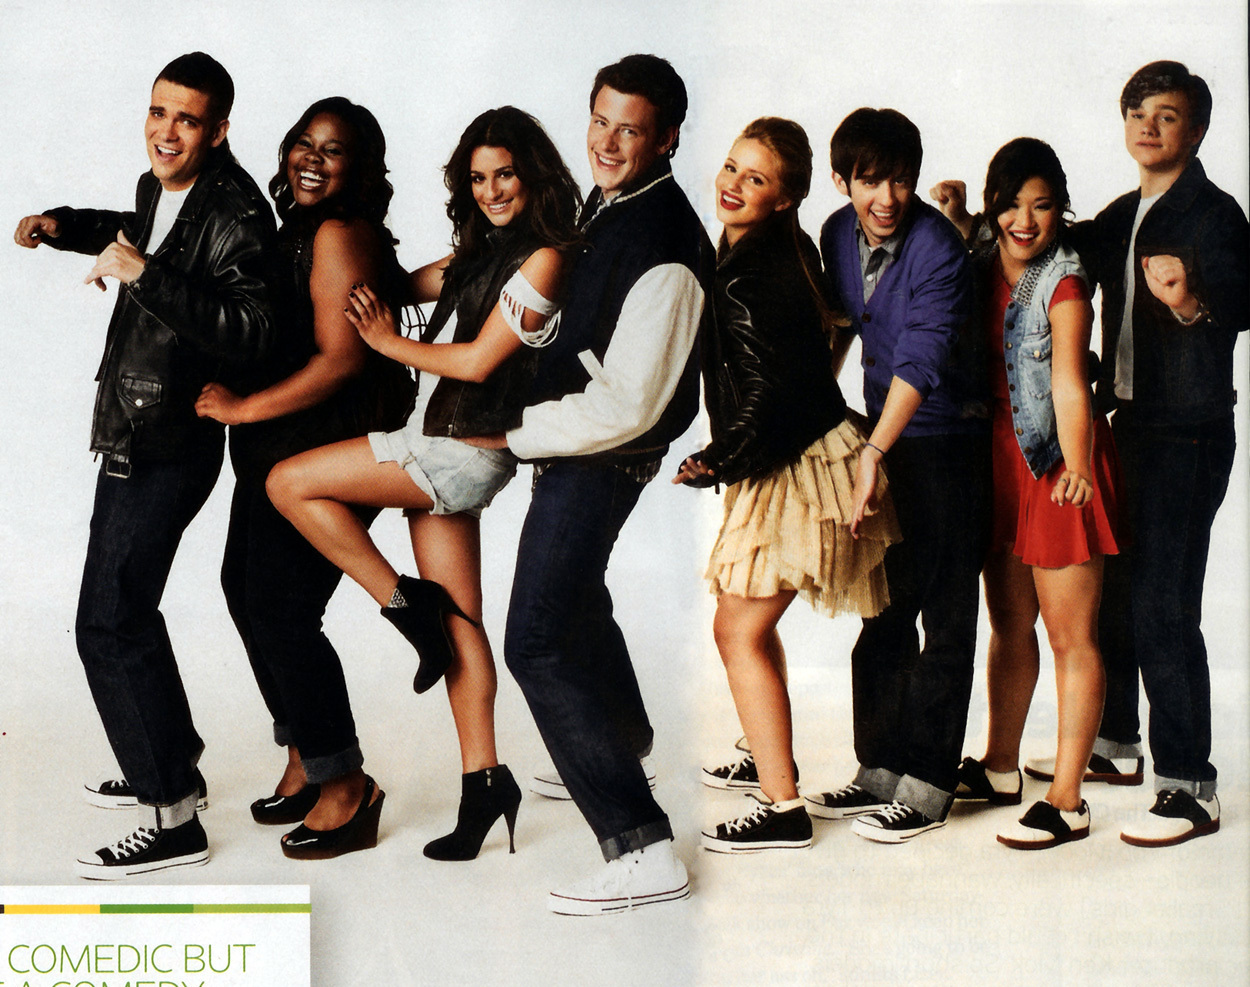 http://images2.fanpop.com/images/photos/8100000/Glee-Entertainment-Weekly-Shoot-glee-8174797-1250-987.jpg